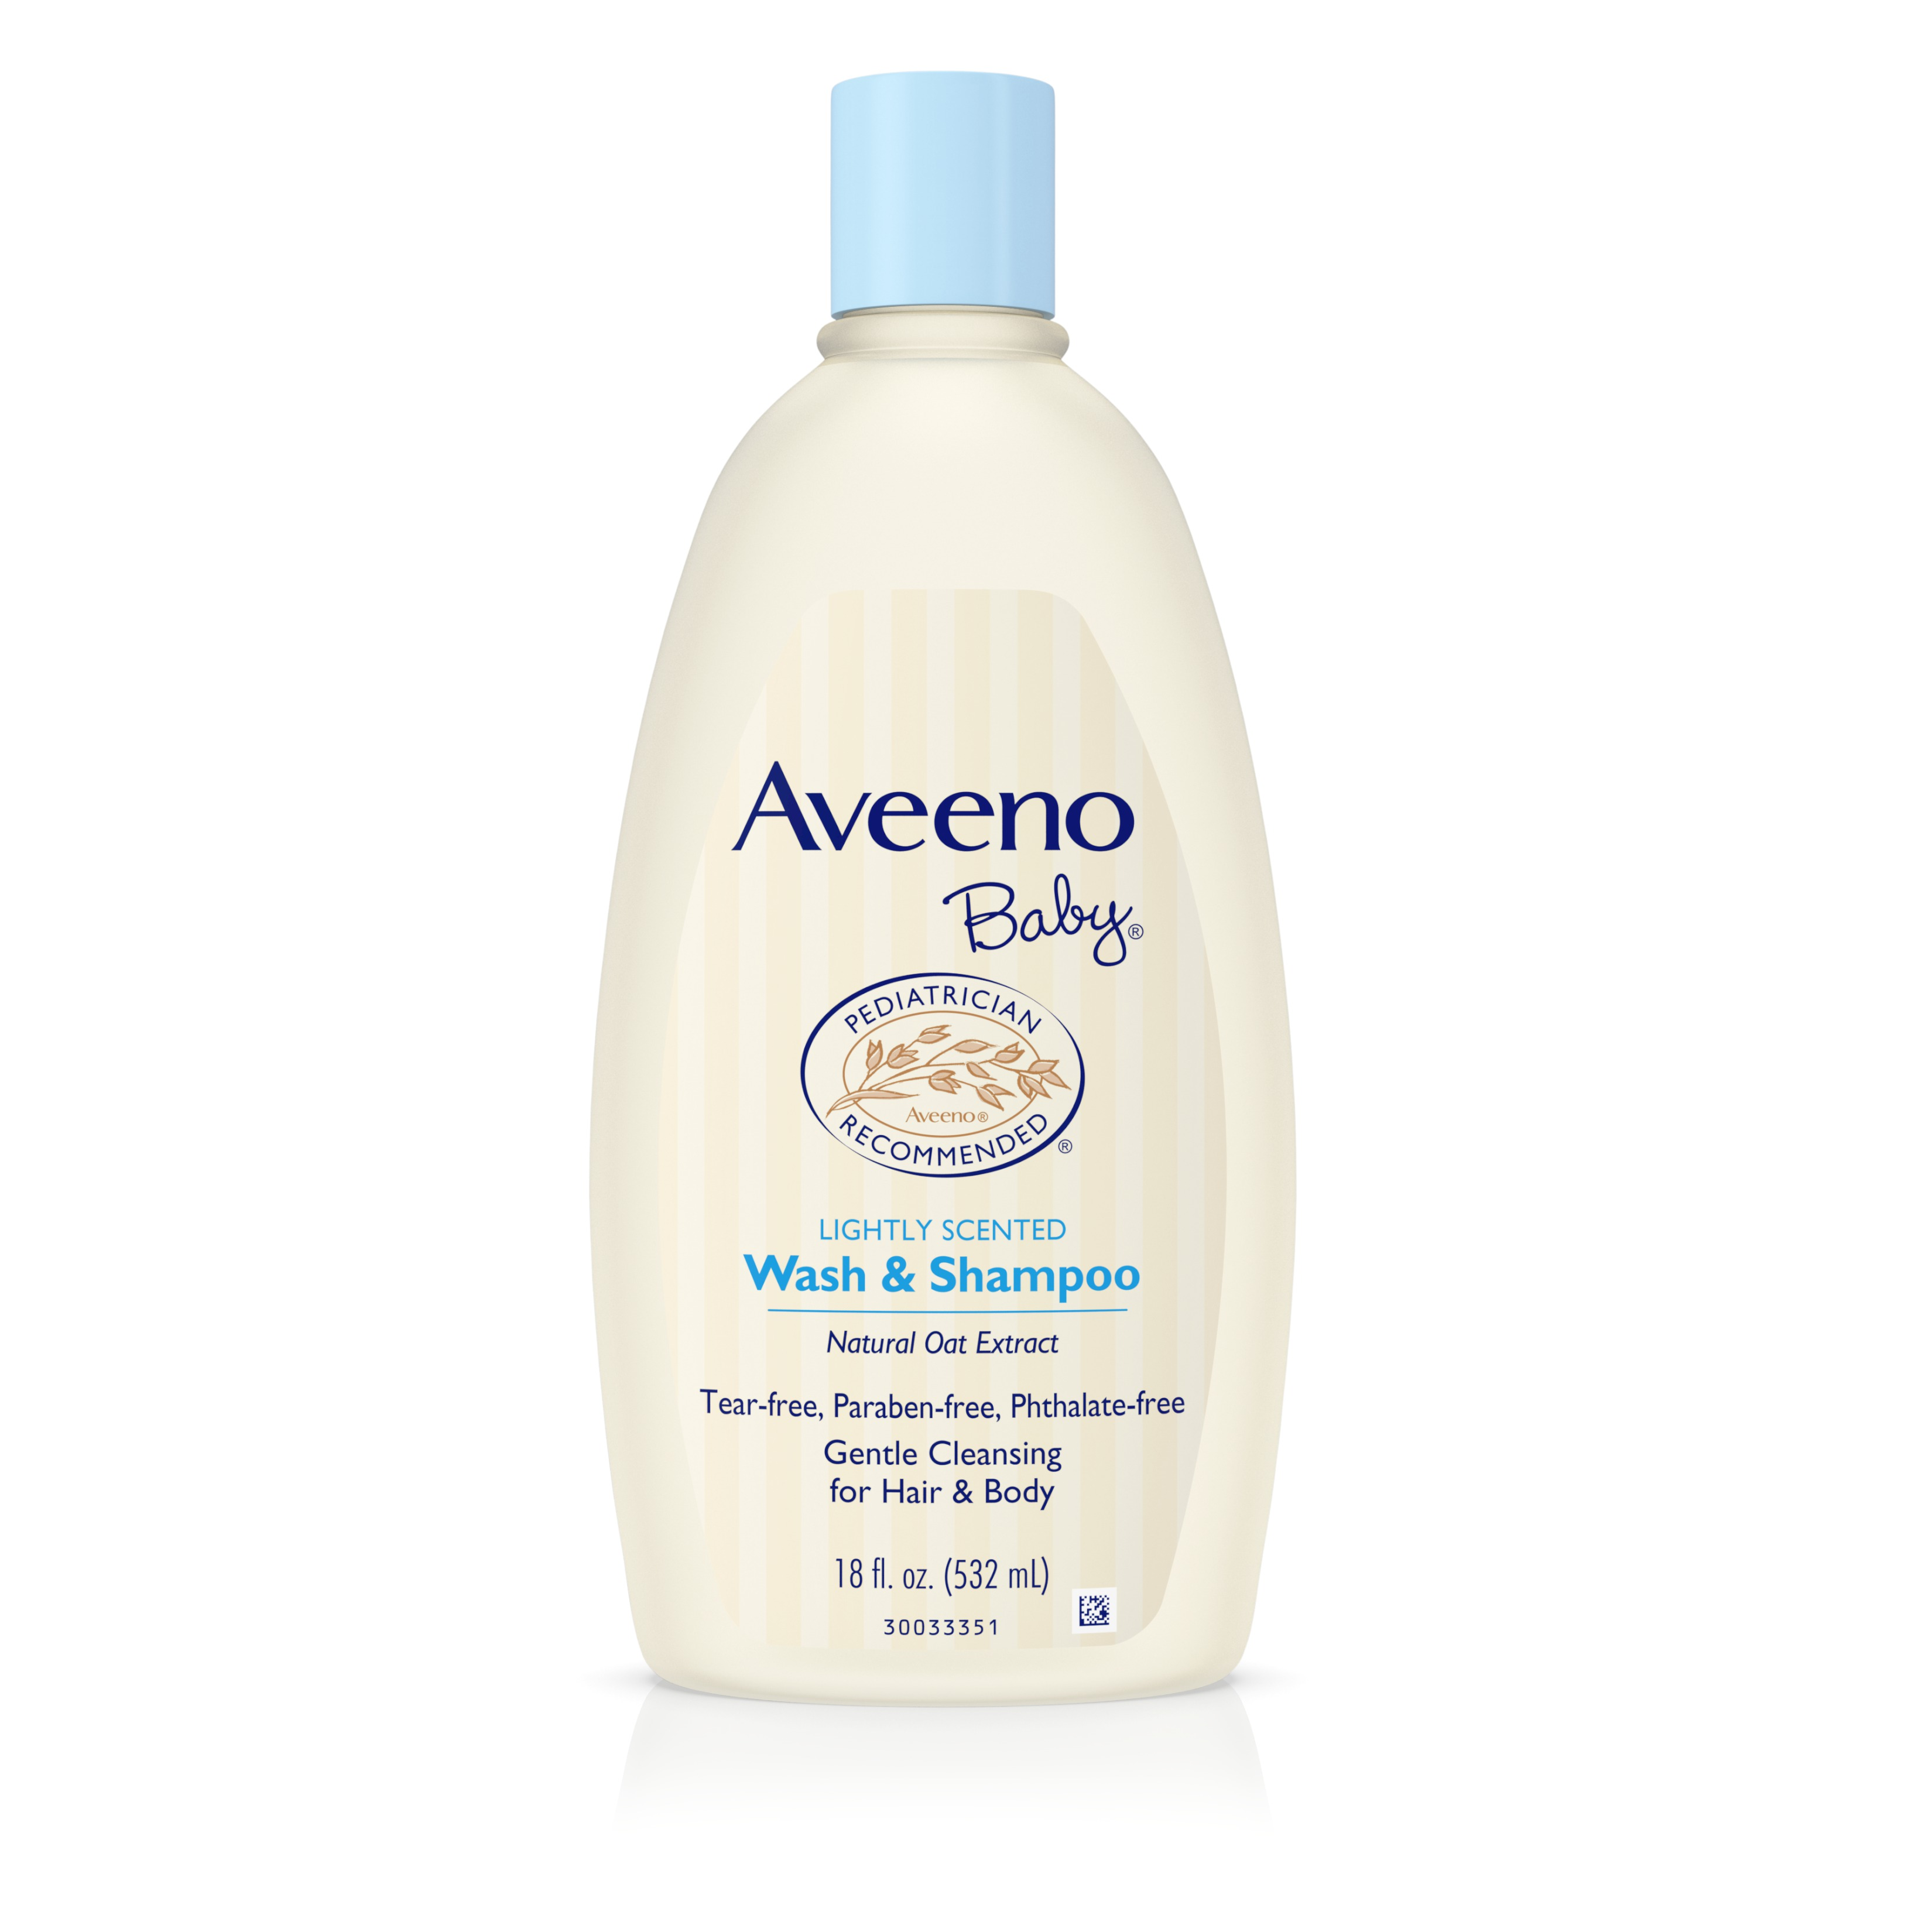 Aveeno Baby Tear-Free 2-in-1 Shampoo & Body Wash, 18 Oz - Walmart.com